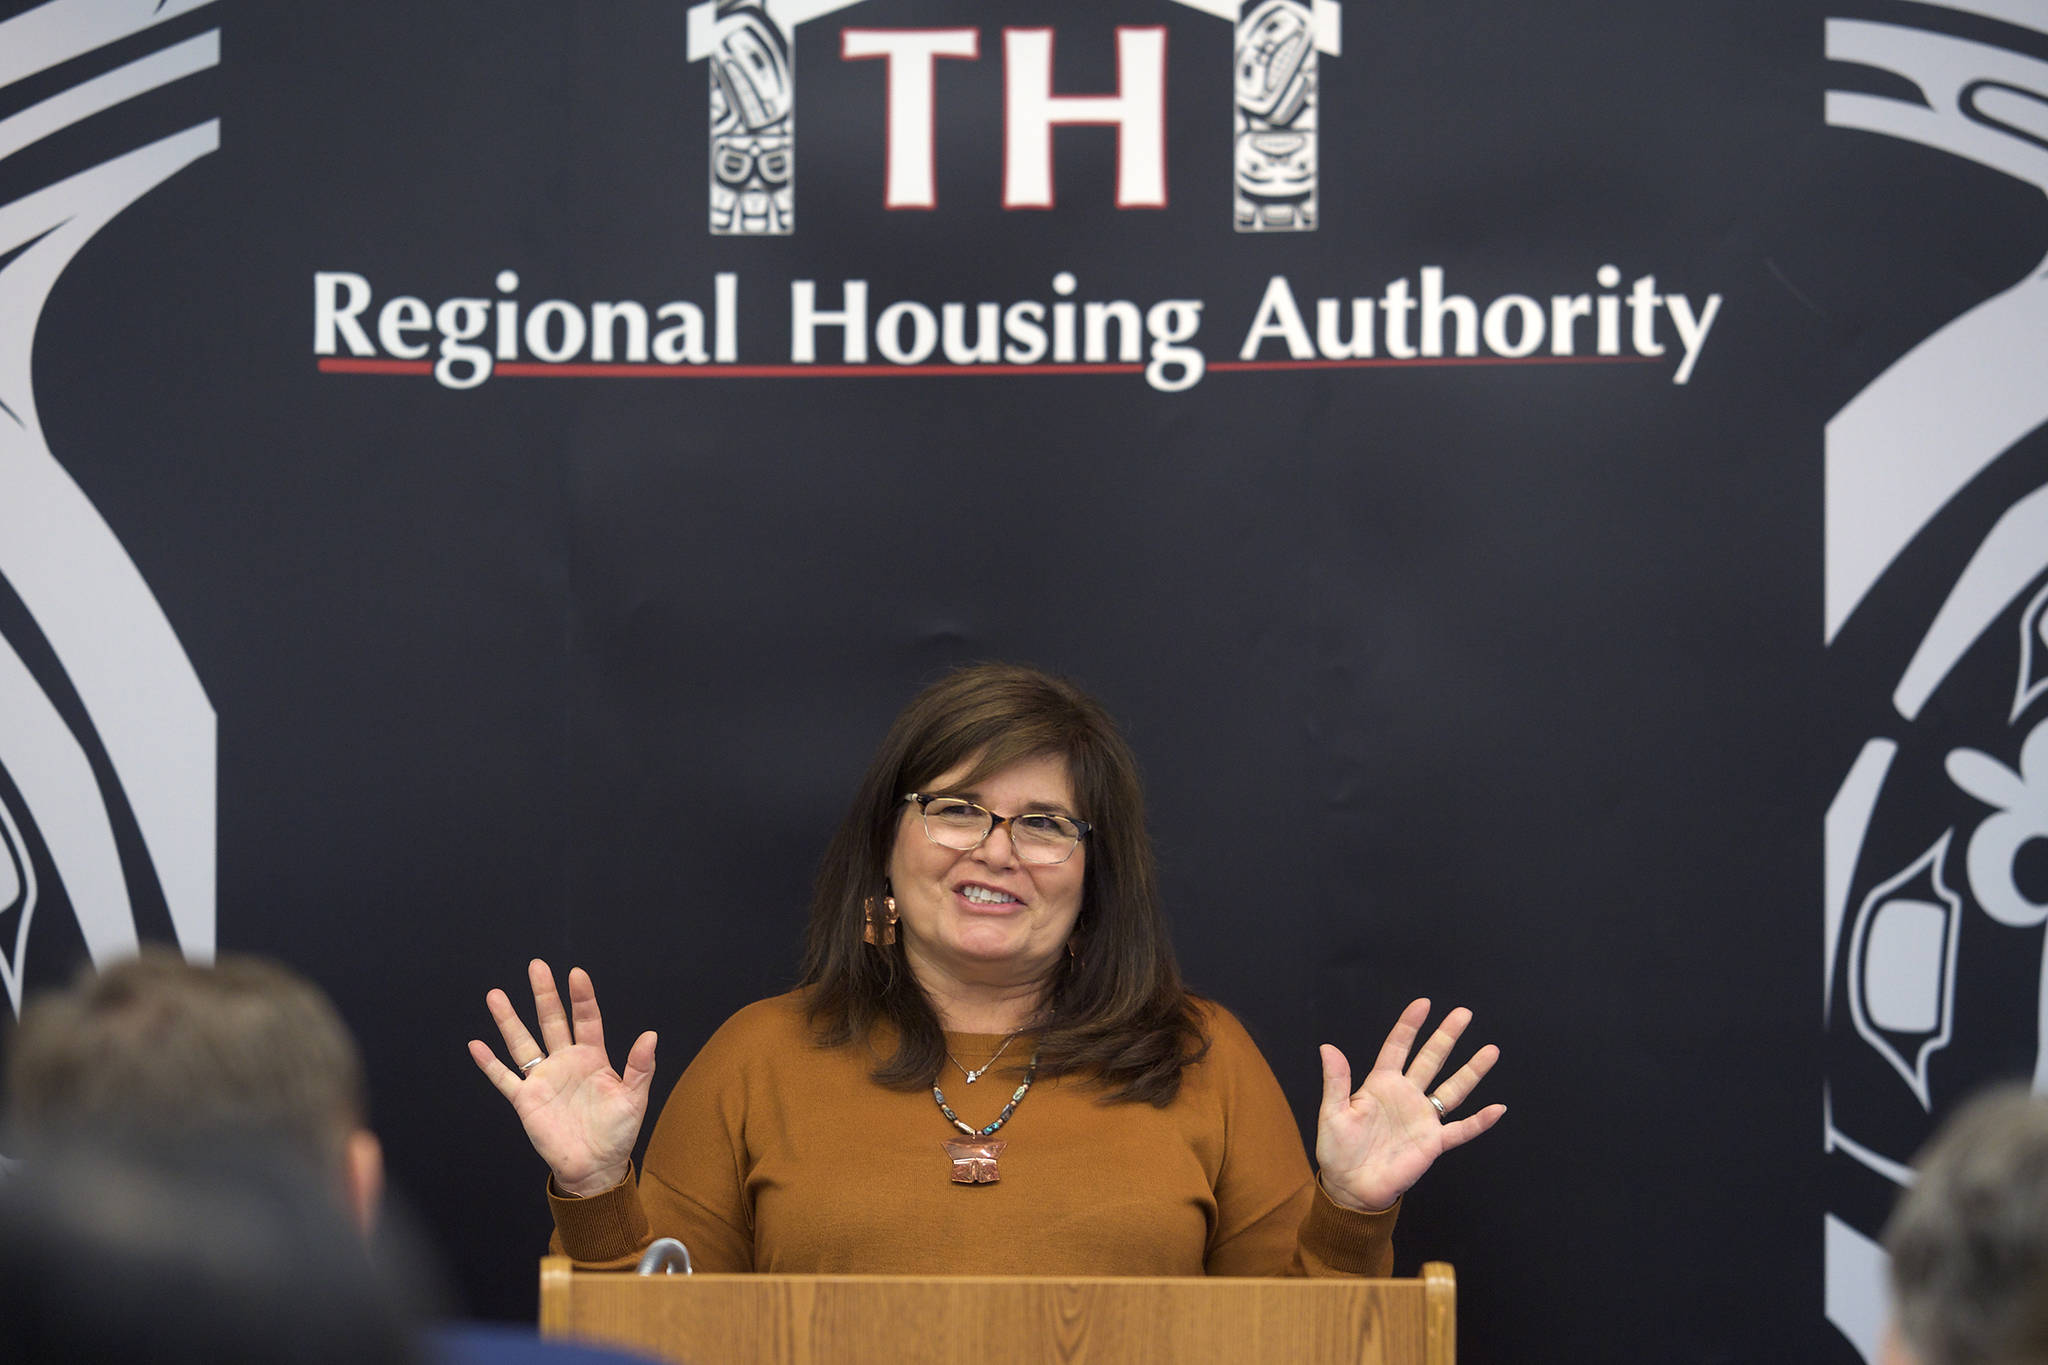 Jacqueline Pata, President & CEO of the Tlingit-Haida Regional Housing Authority, speaks at an announcement of a $1 million grant to help veteran's housing needs in Southeast Alaska on Thursday, Oct. 3, 2019. (Michael Penn | Juneau Empire)